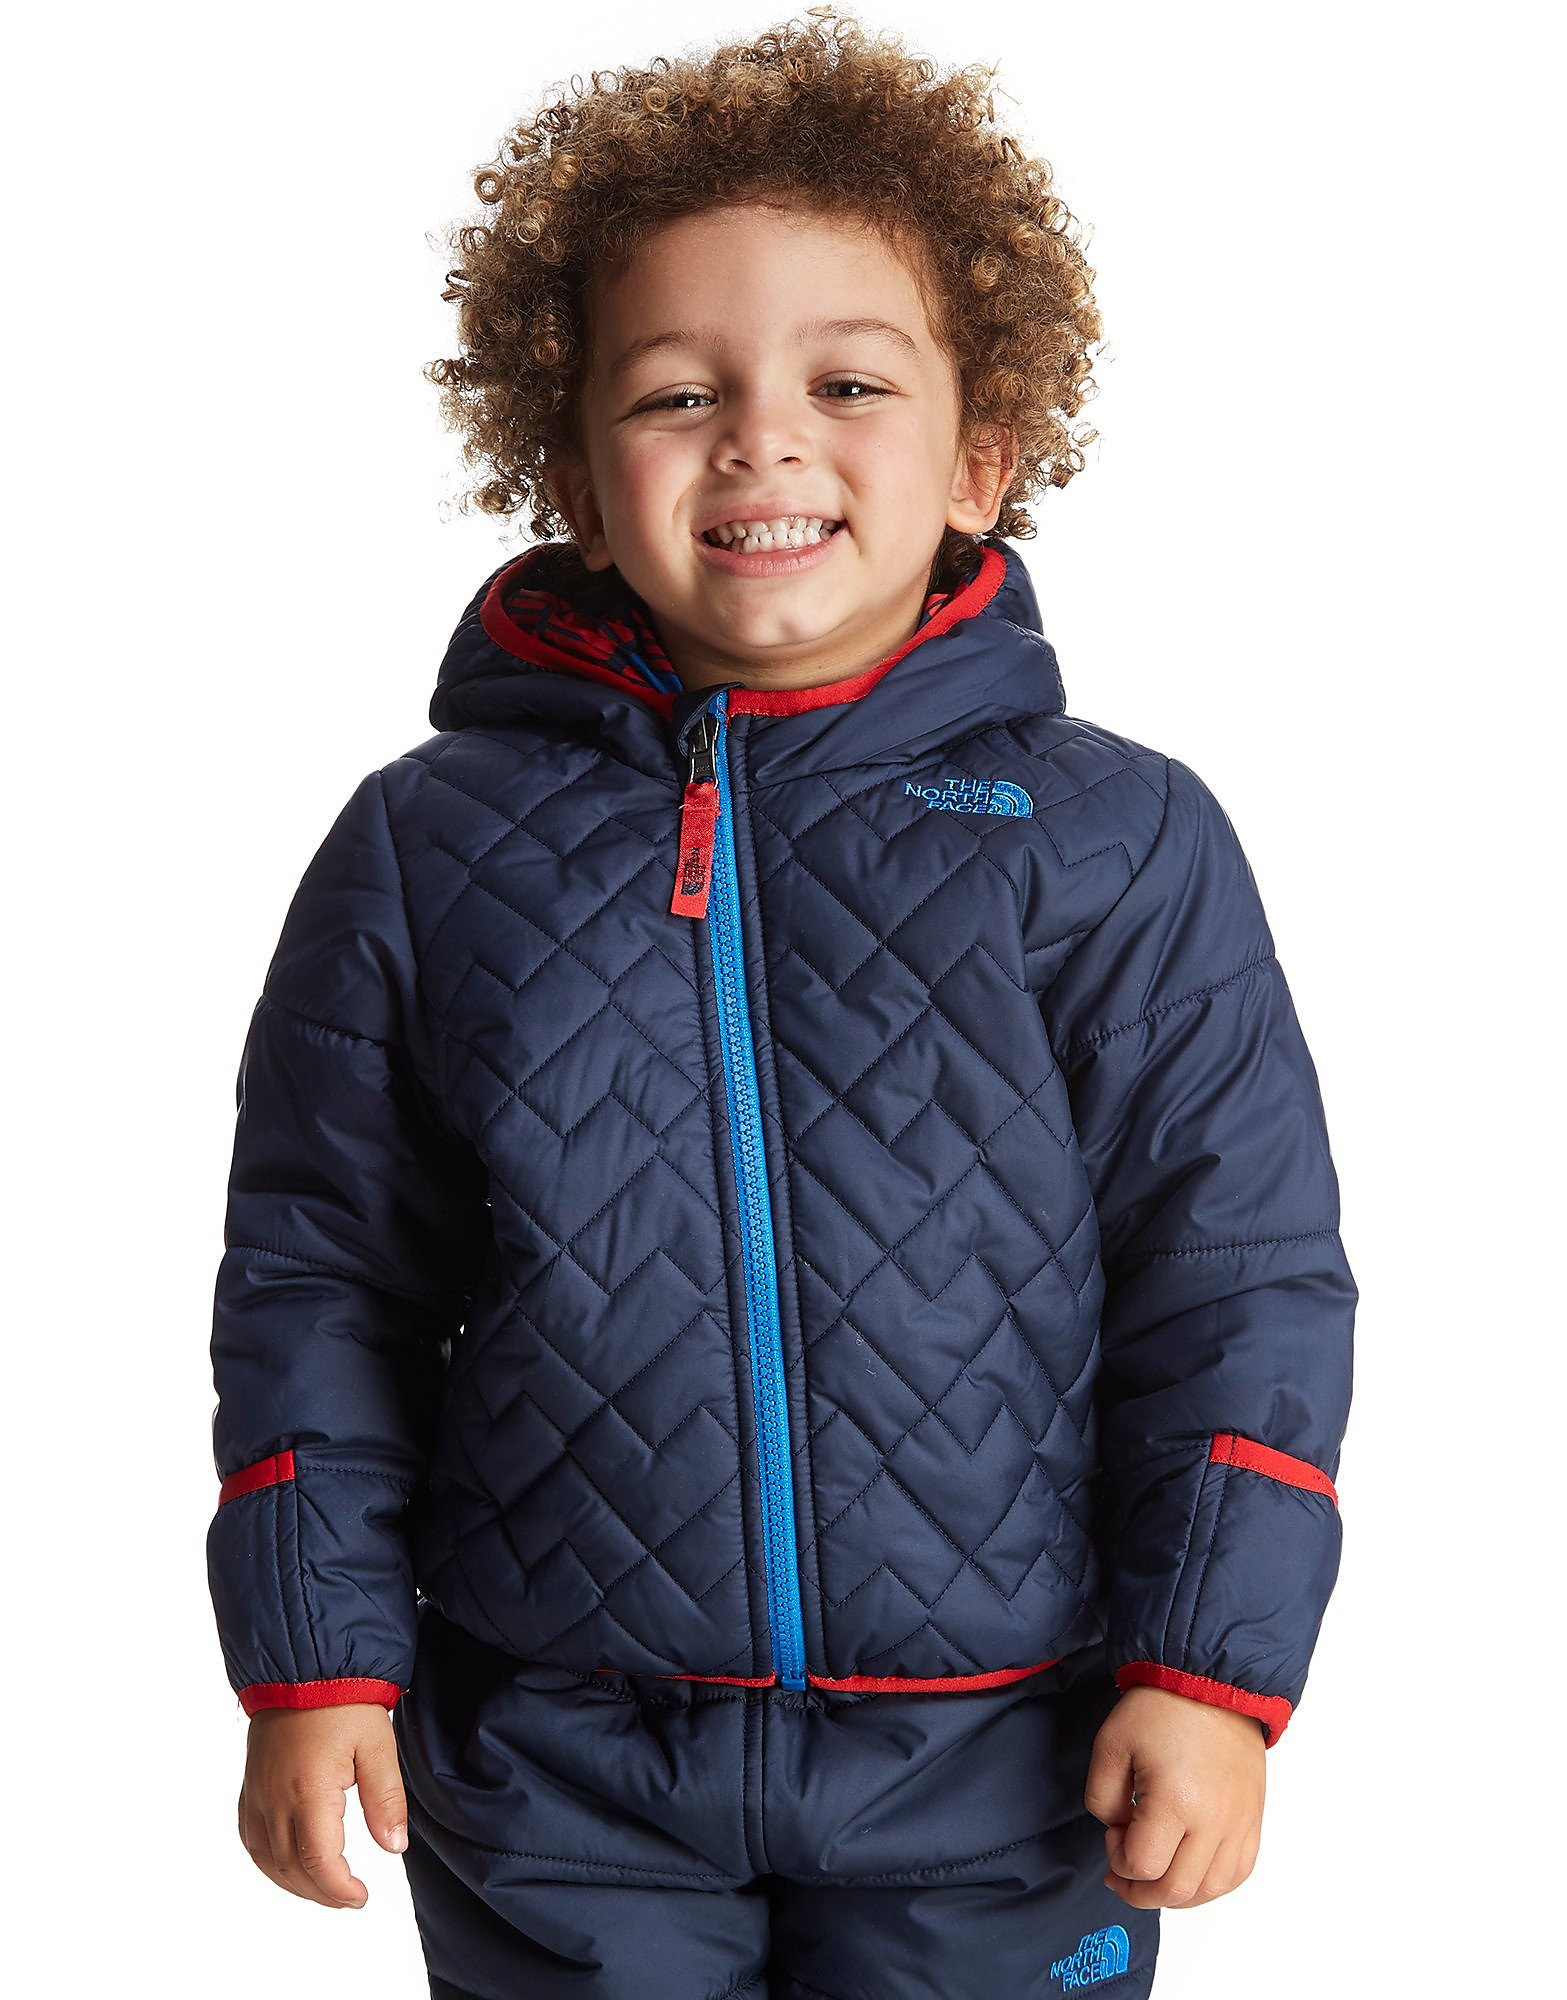 The North Face Perrito Kinderjacke zum Wenden